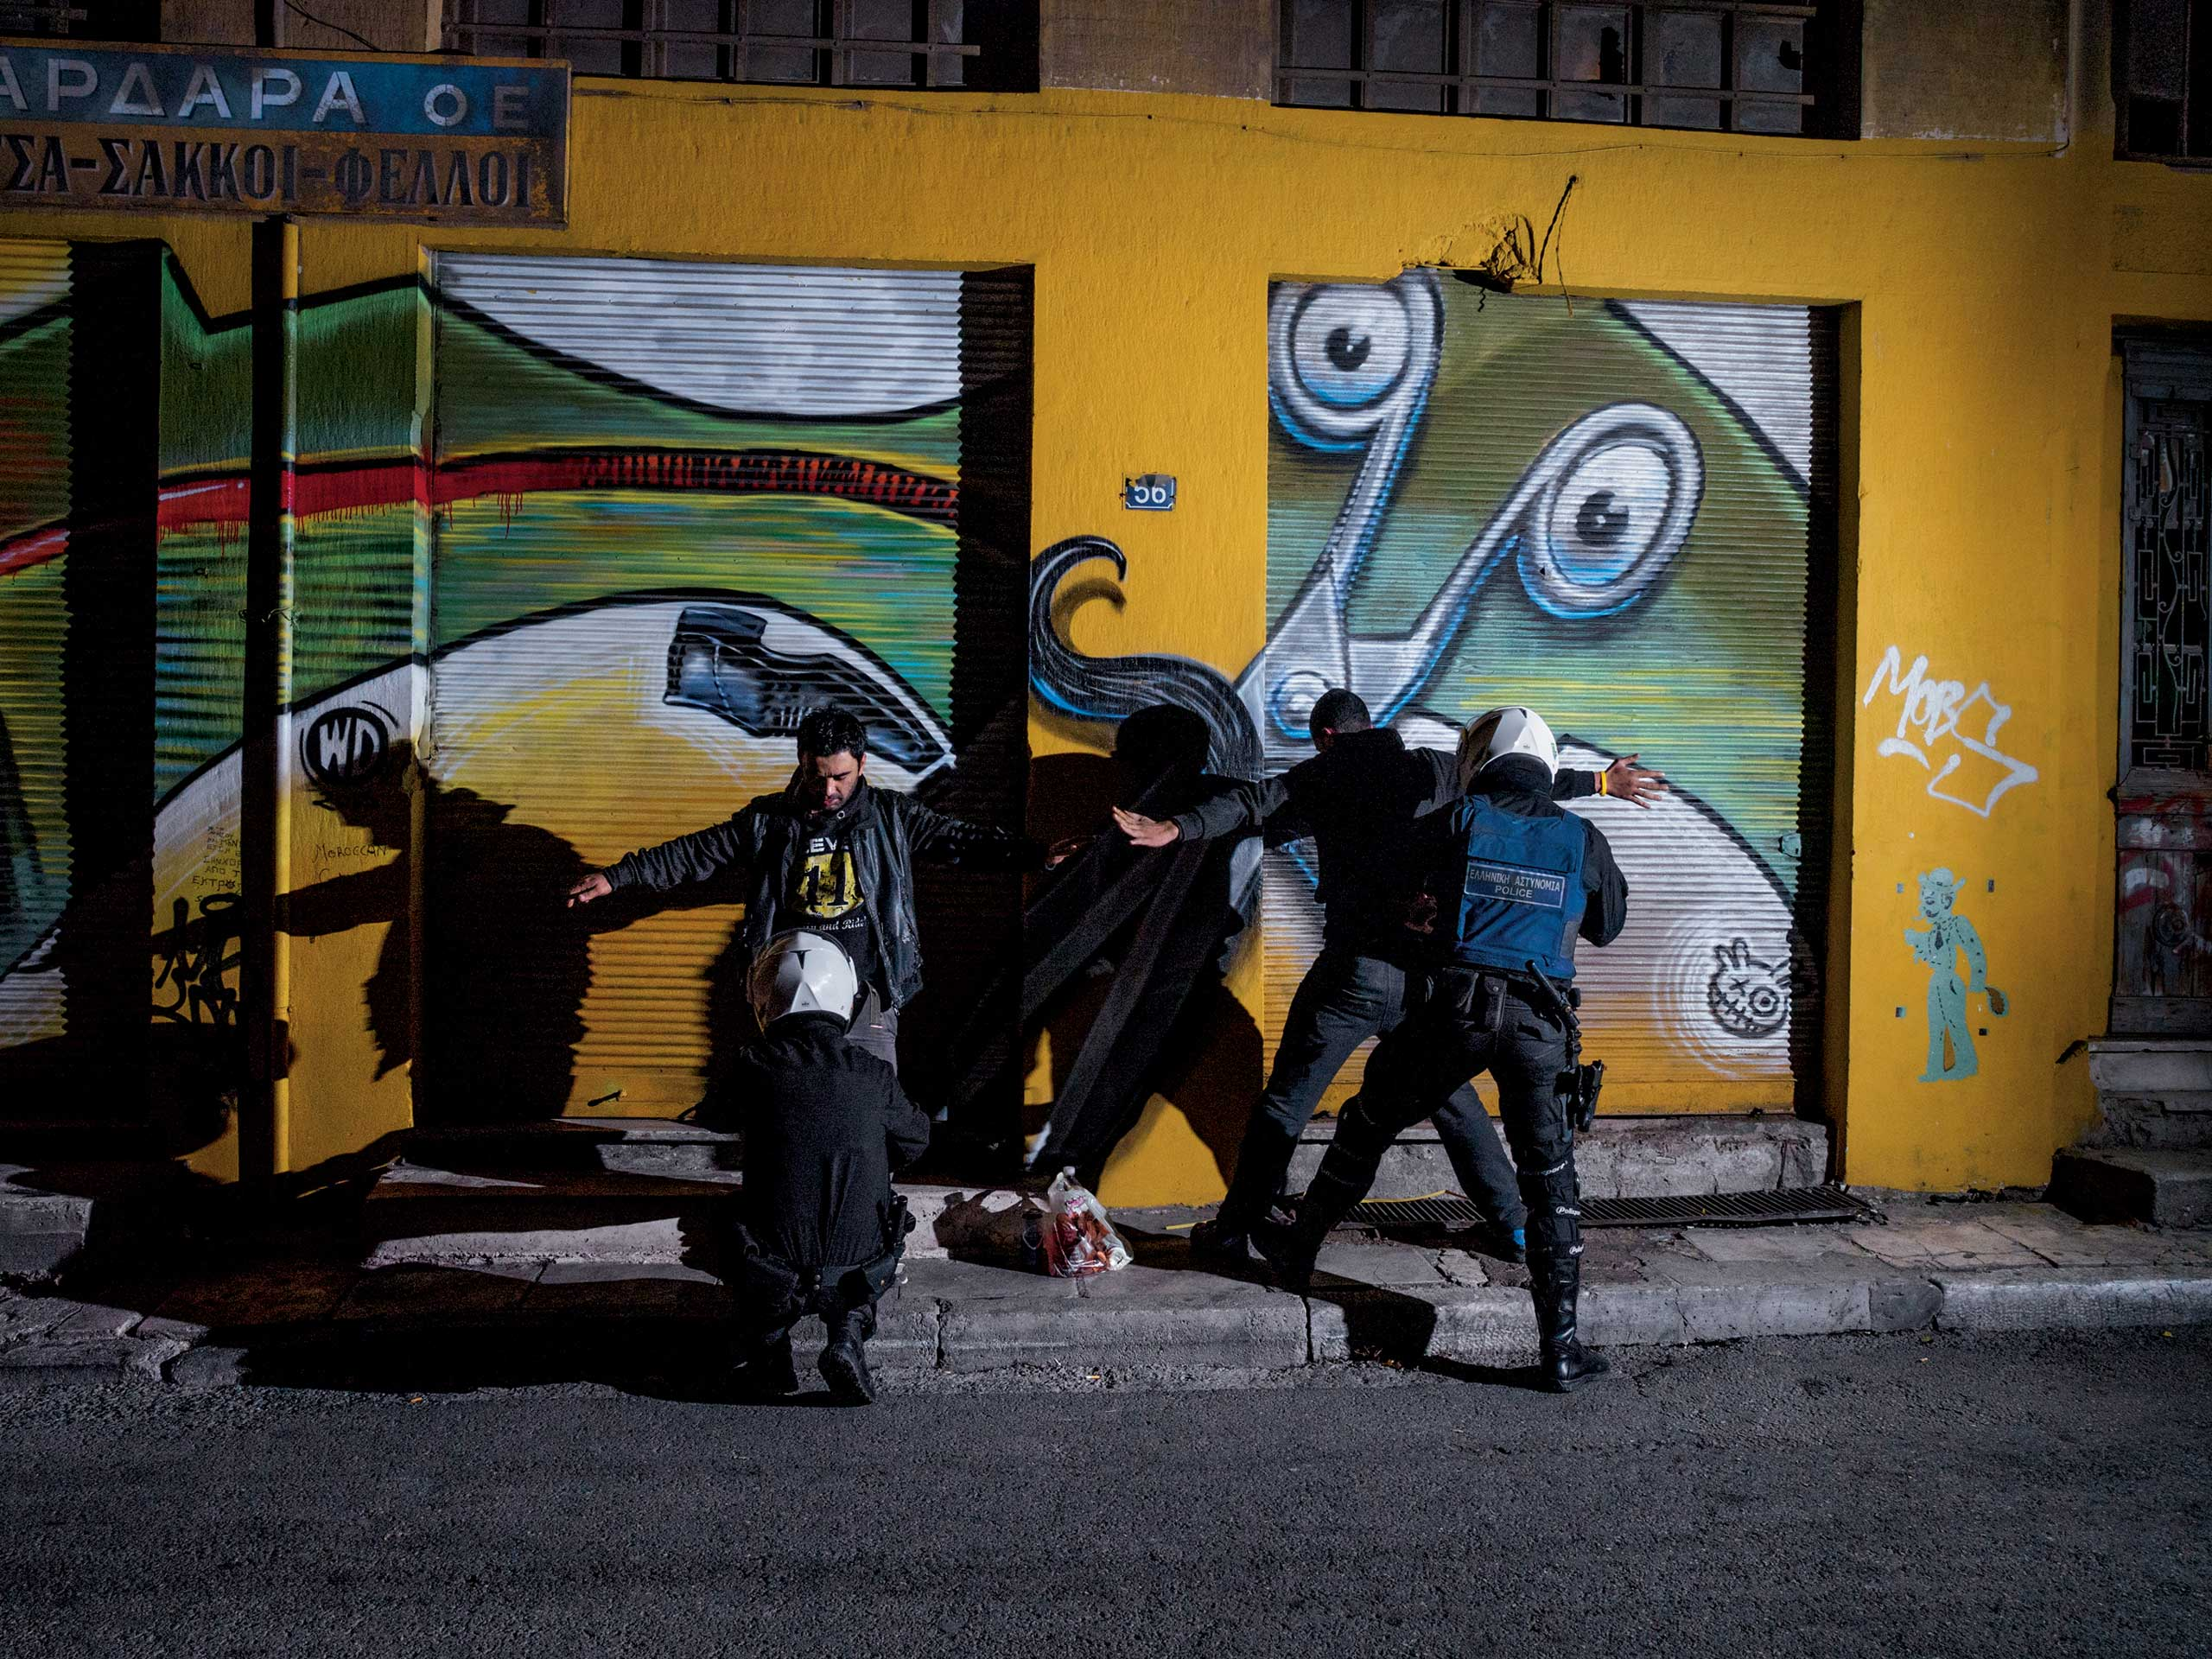 From the March issue of National Geographic magazine: Athens                               Police frisk young men on Aeschylus Street, near Omonia Square in Athens. Rates of drug use, prostitution, and HIV infection have risen in the area since the crisis began.